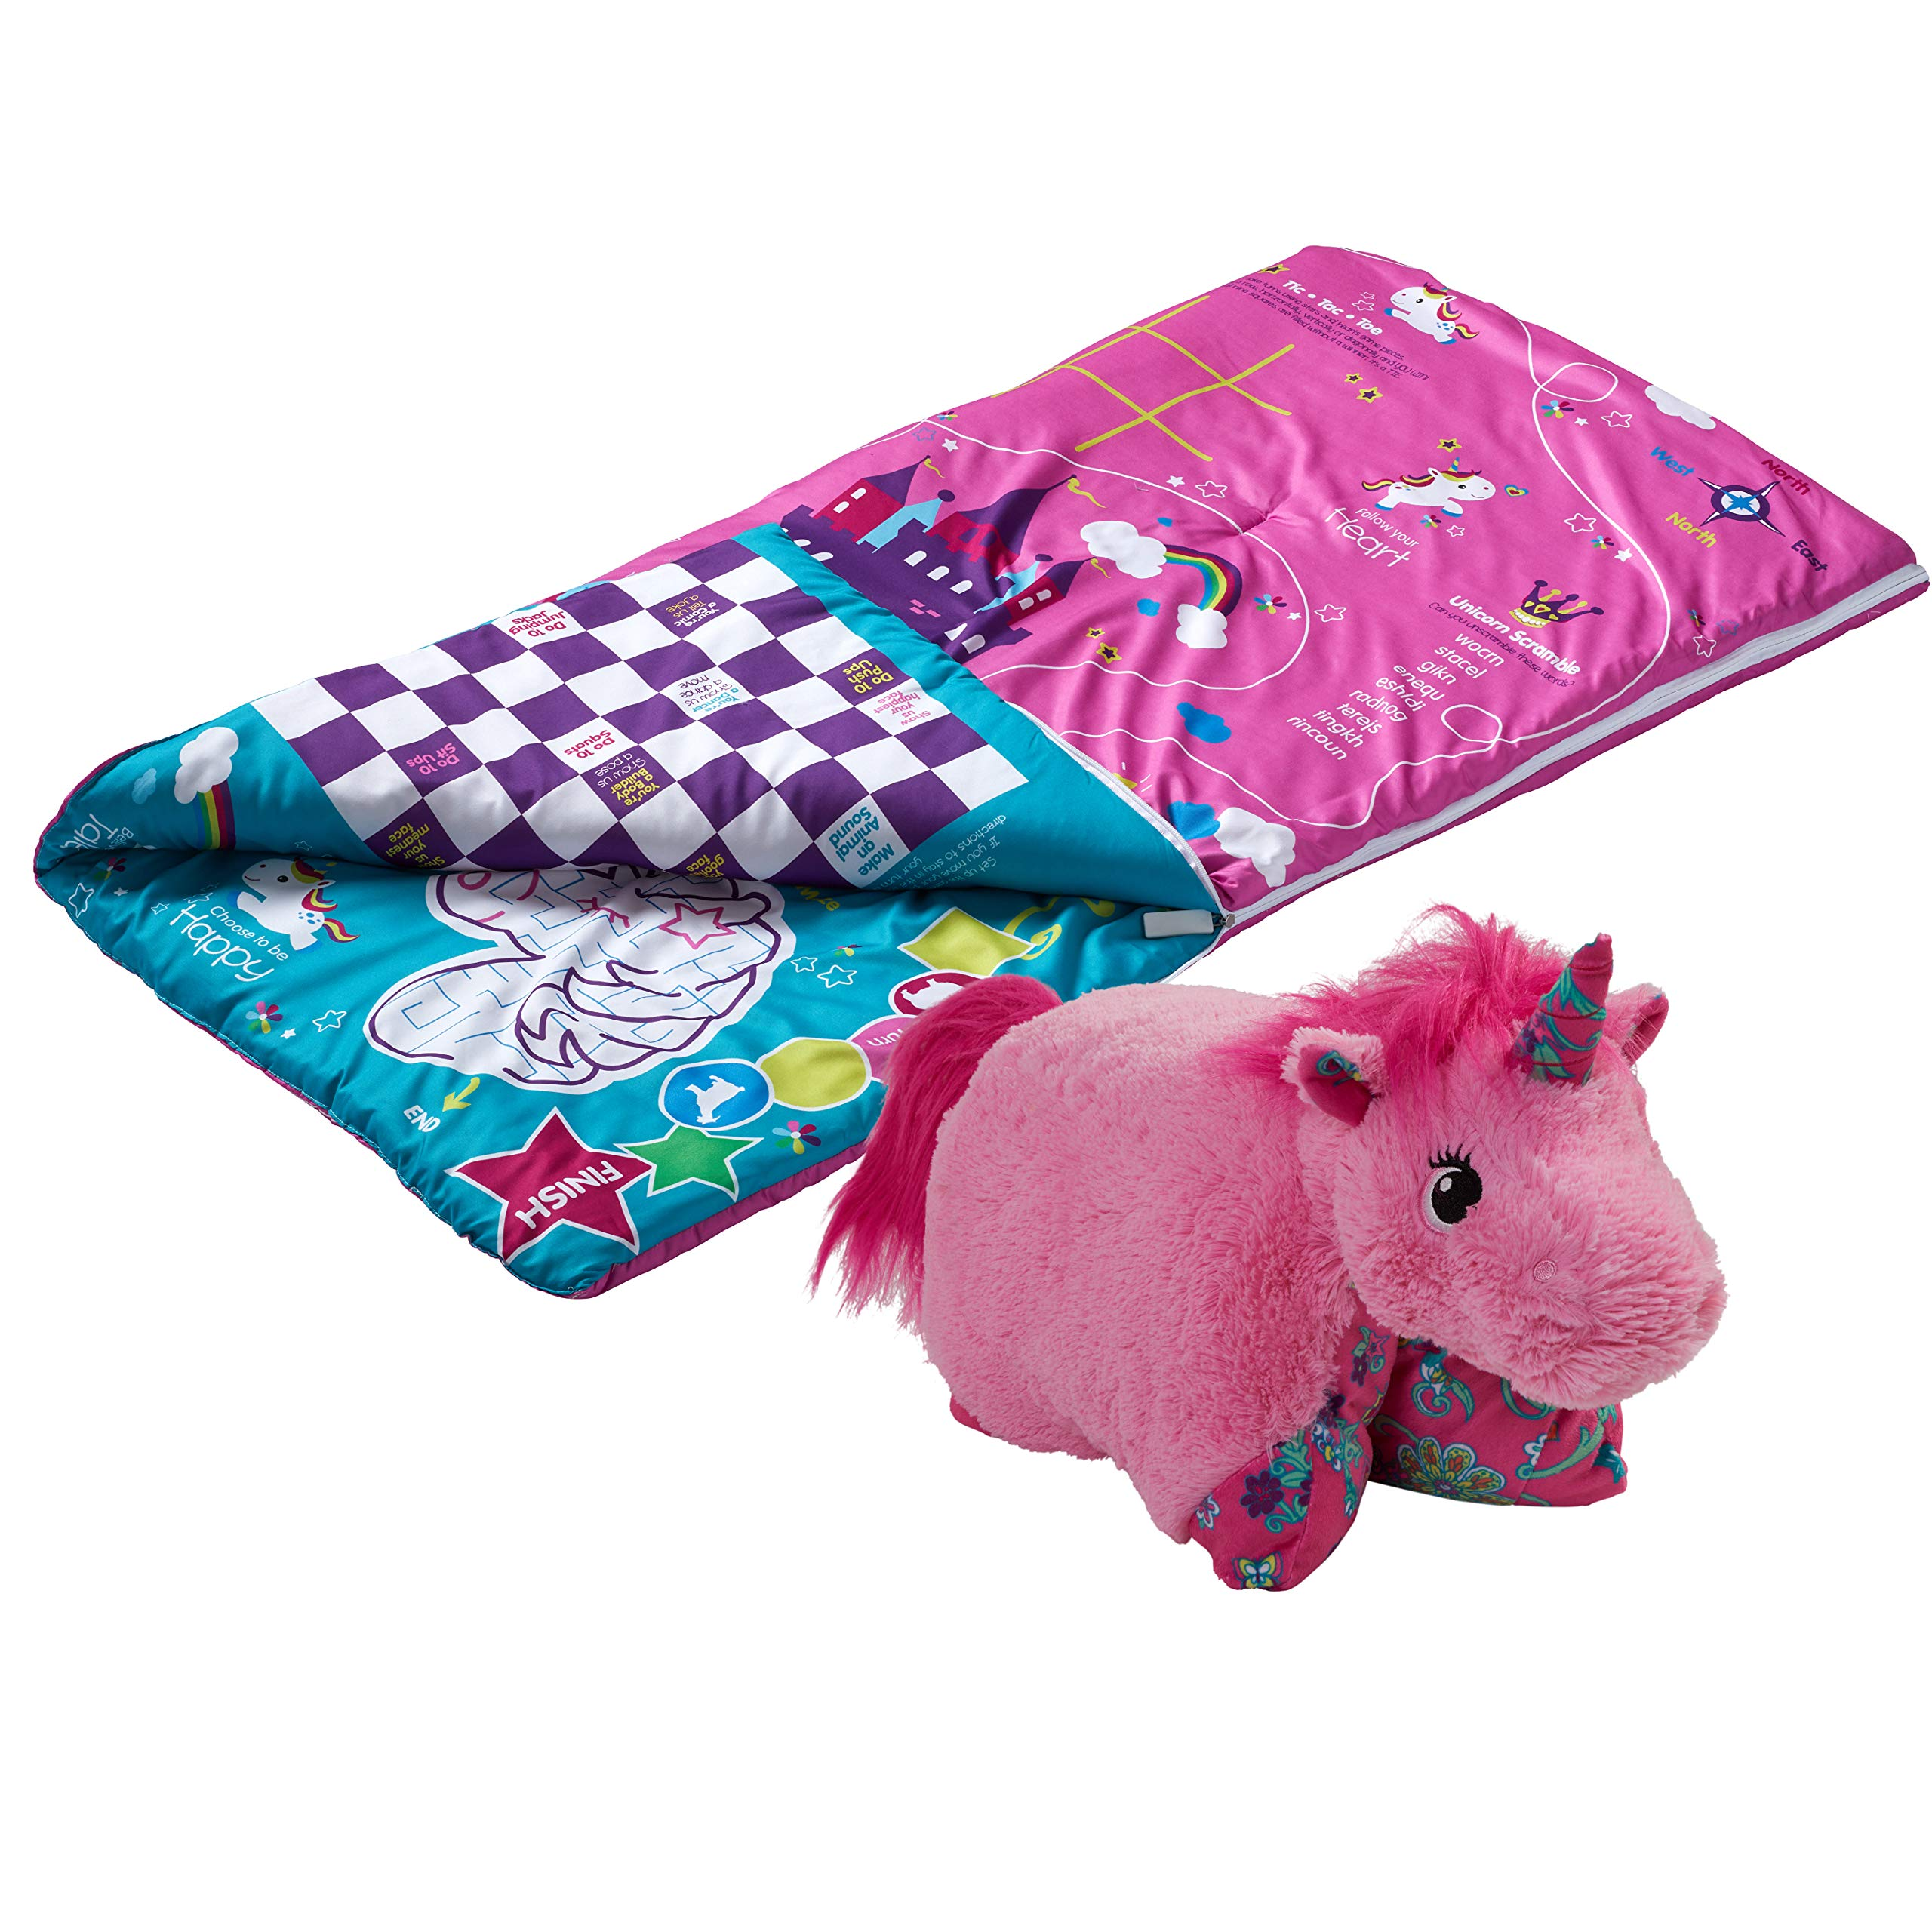 Pillow Pets SlumberPlay Pink Unicorn Sleeping Bag with 15 Games Printed on Bag and Pink Unicorn Combo by Pillow Pets